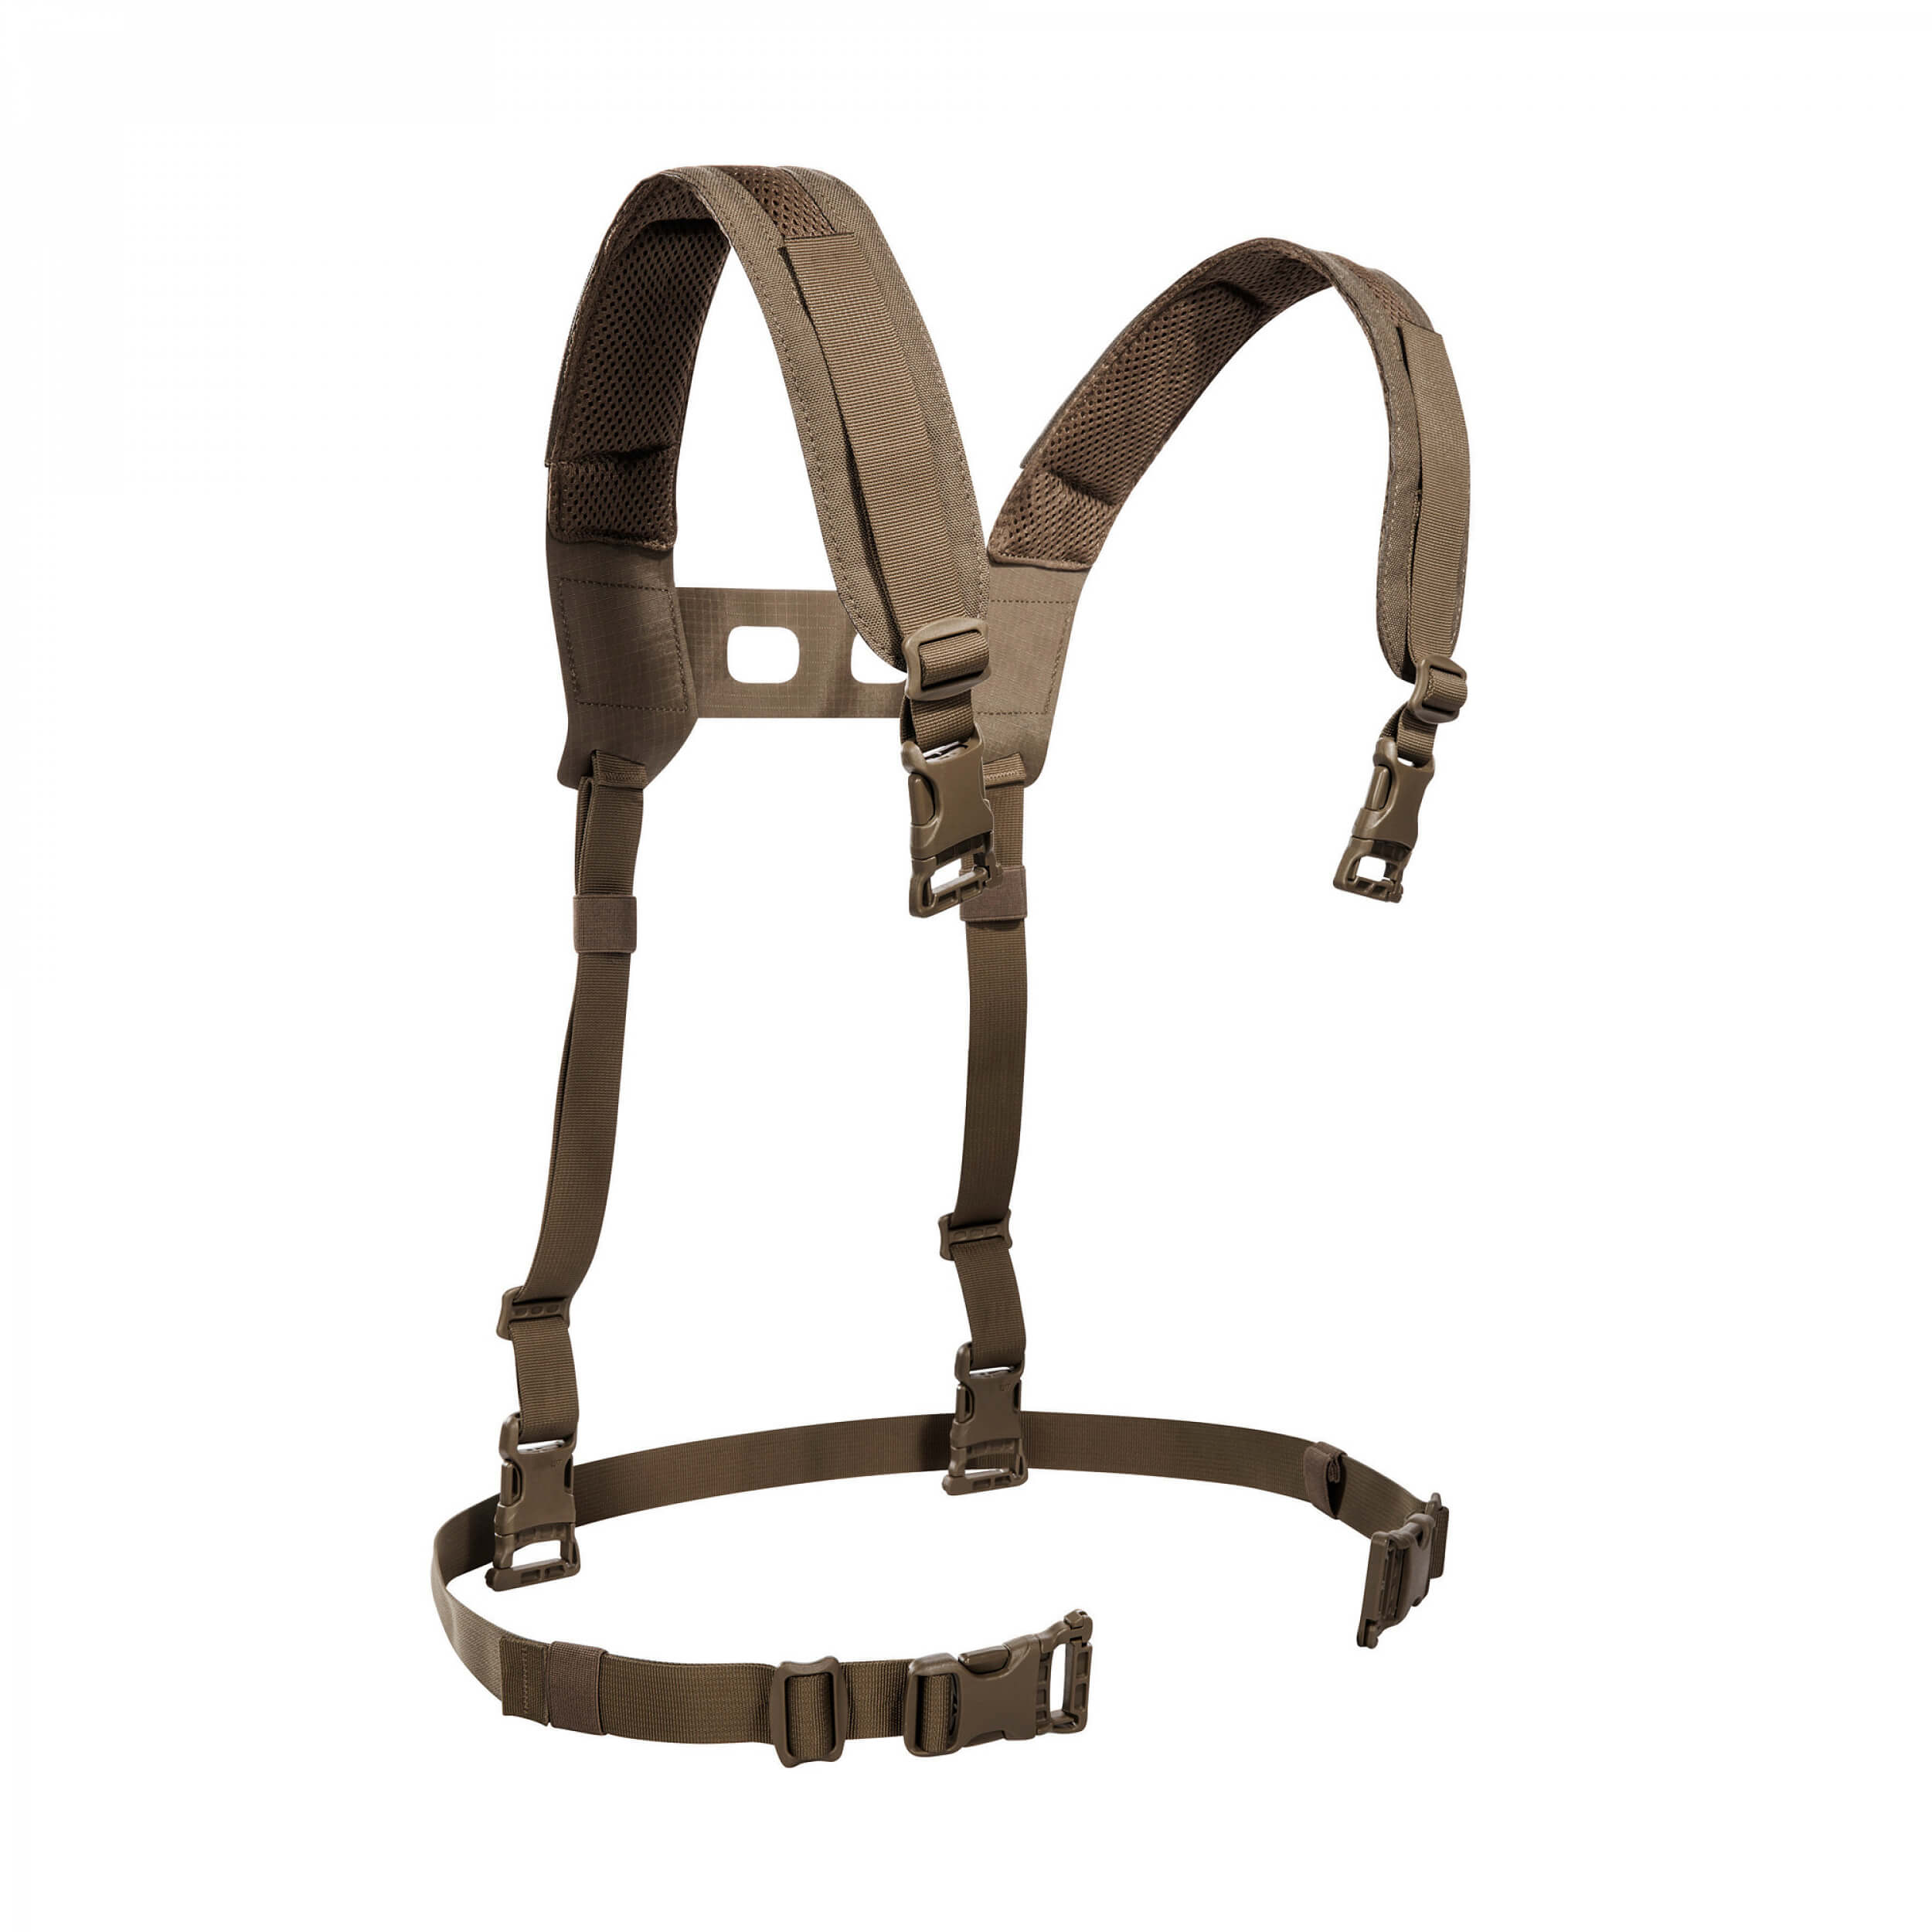 Tasmanian Tiger Harness Set coyote brown